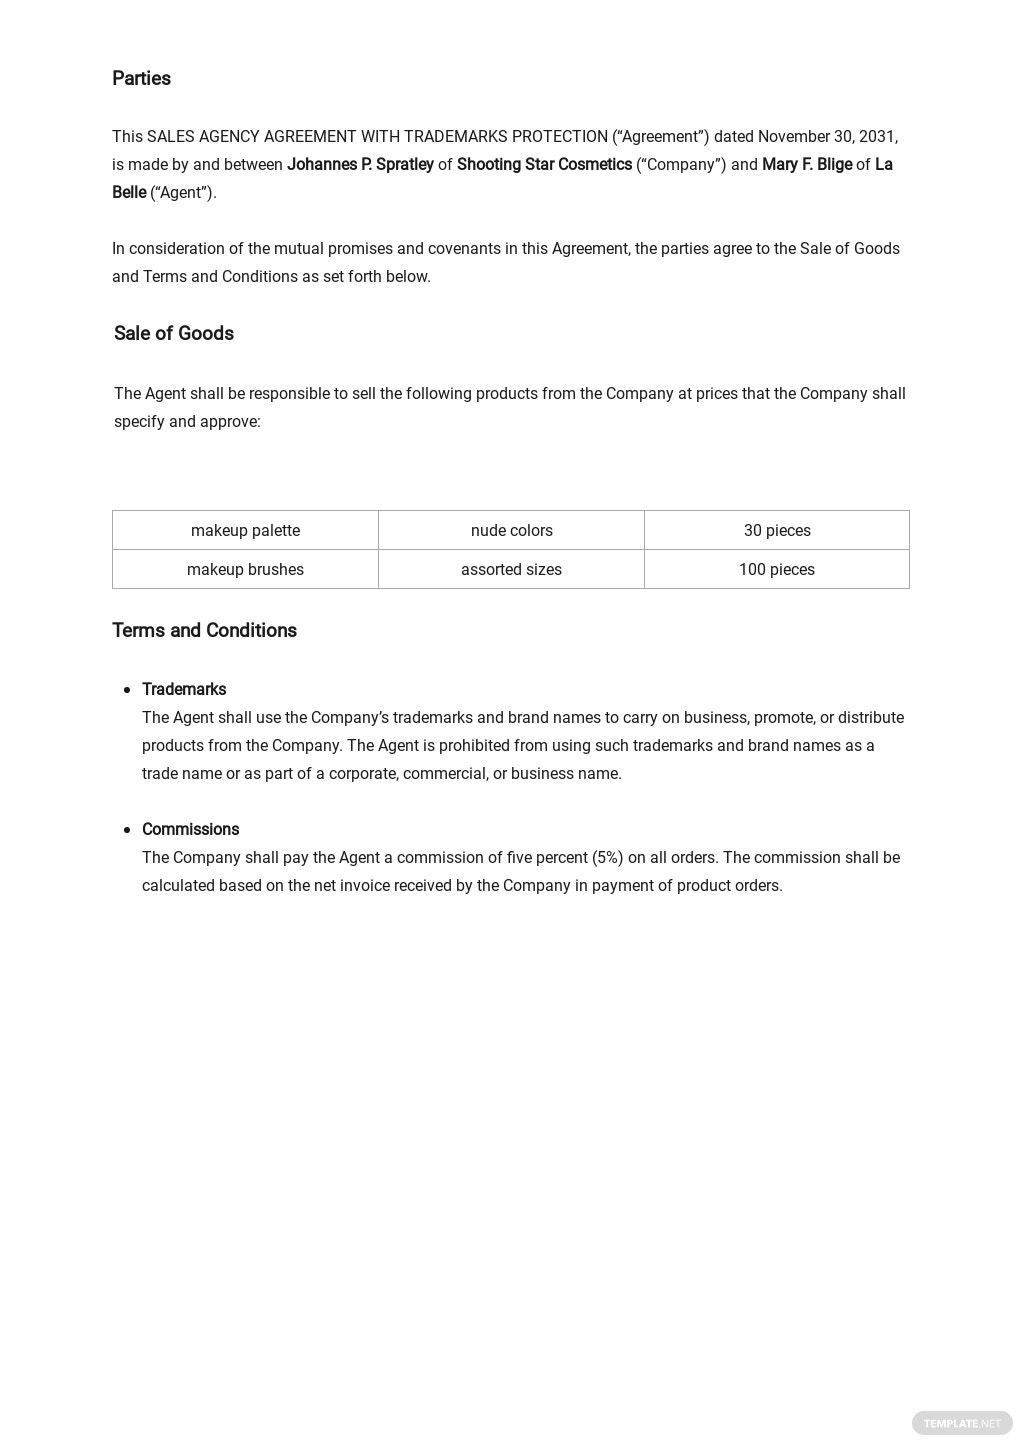 Sales Agency Agreement With Trademarks Protection Template 1.jpe